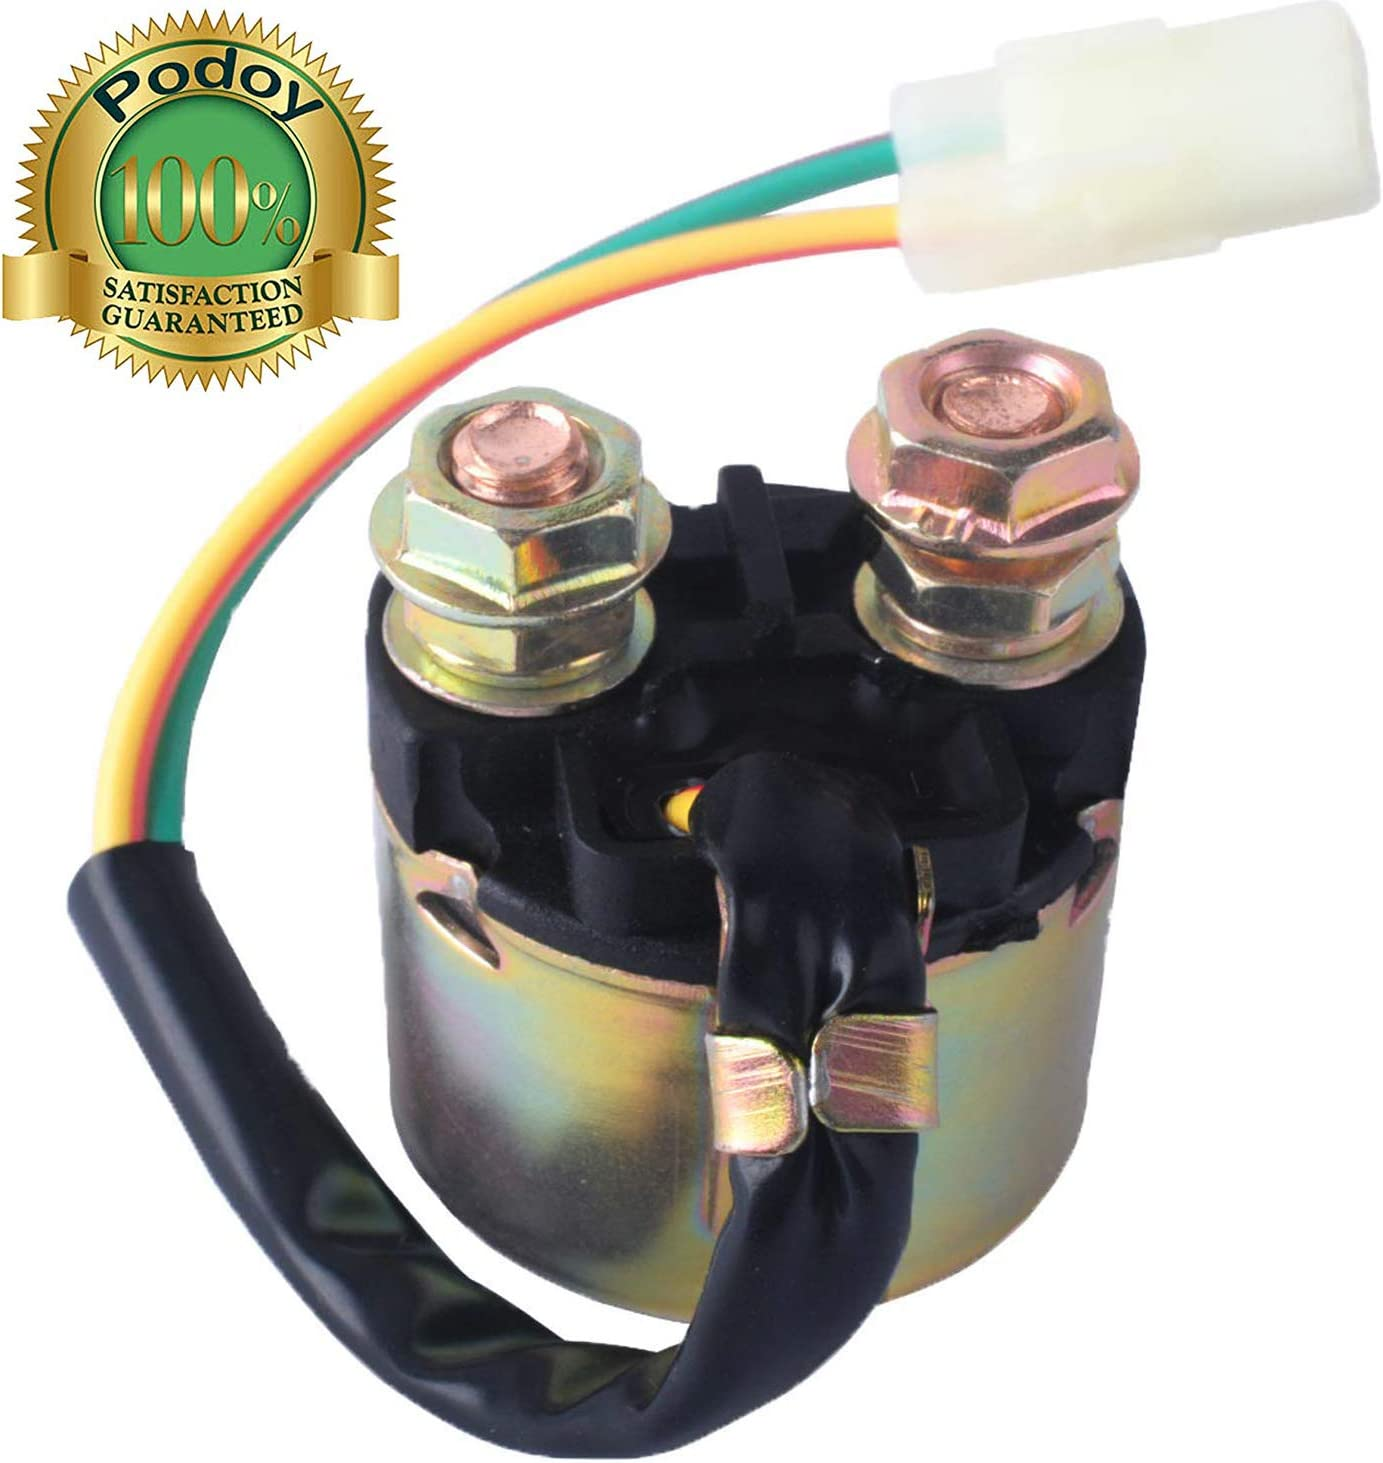 Starter Solenoid Relay for Honda 350 TRX350 Fourtrax Rancher 2000 2001 2002 2003 2004 2005 2006 by Podoy